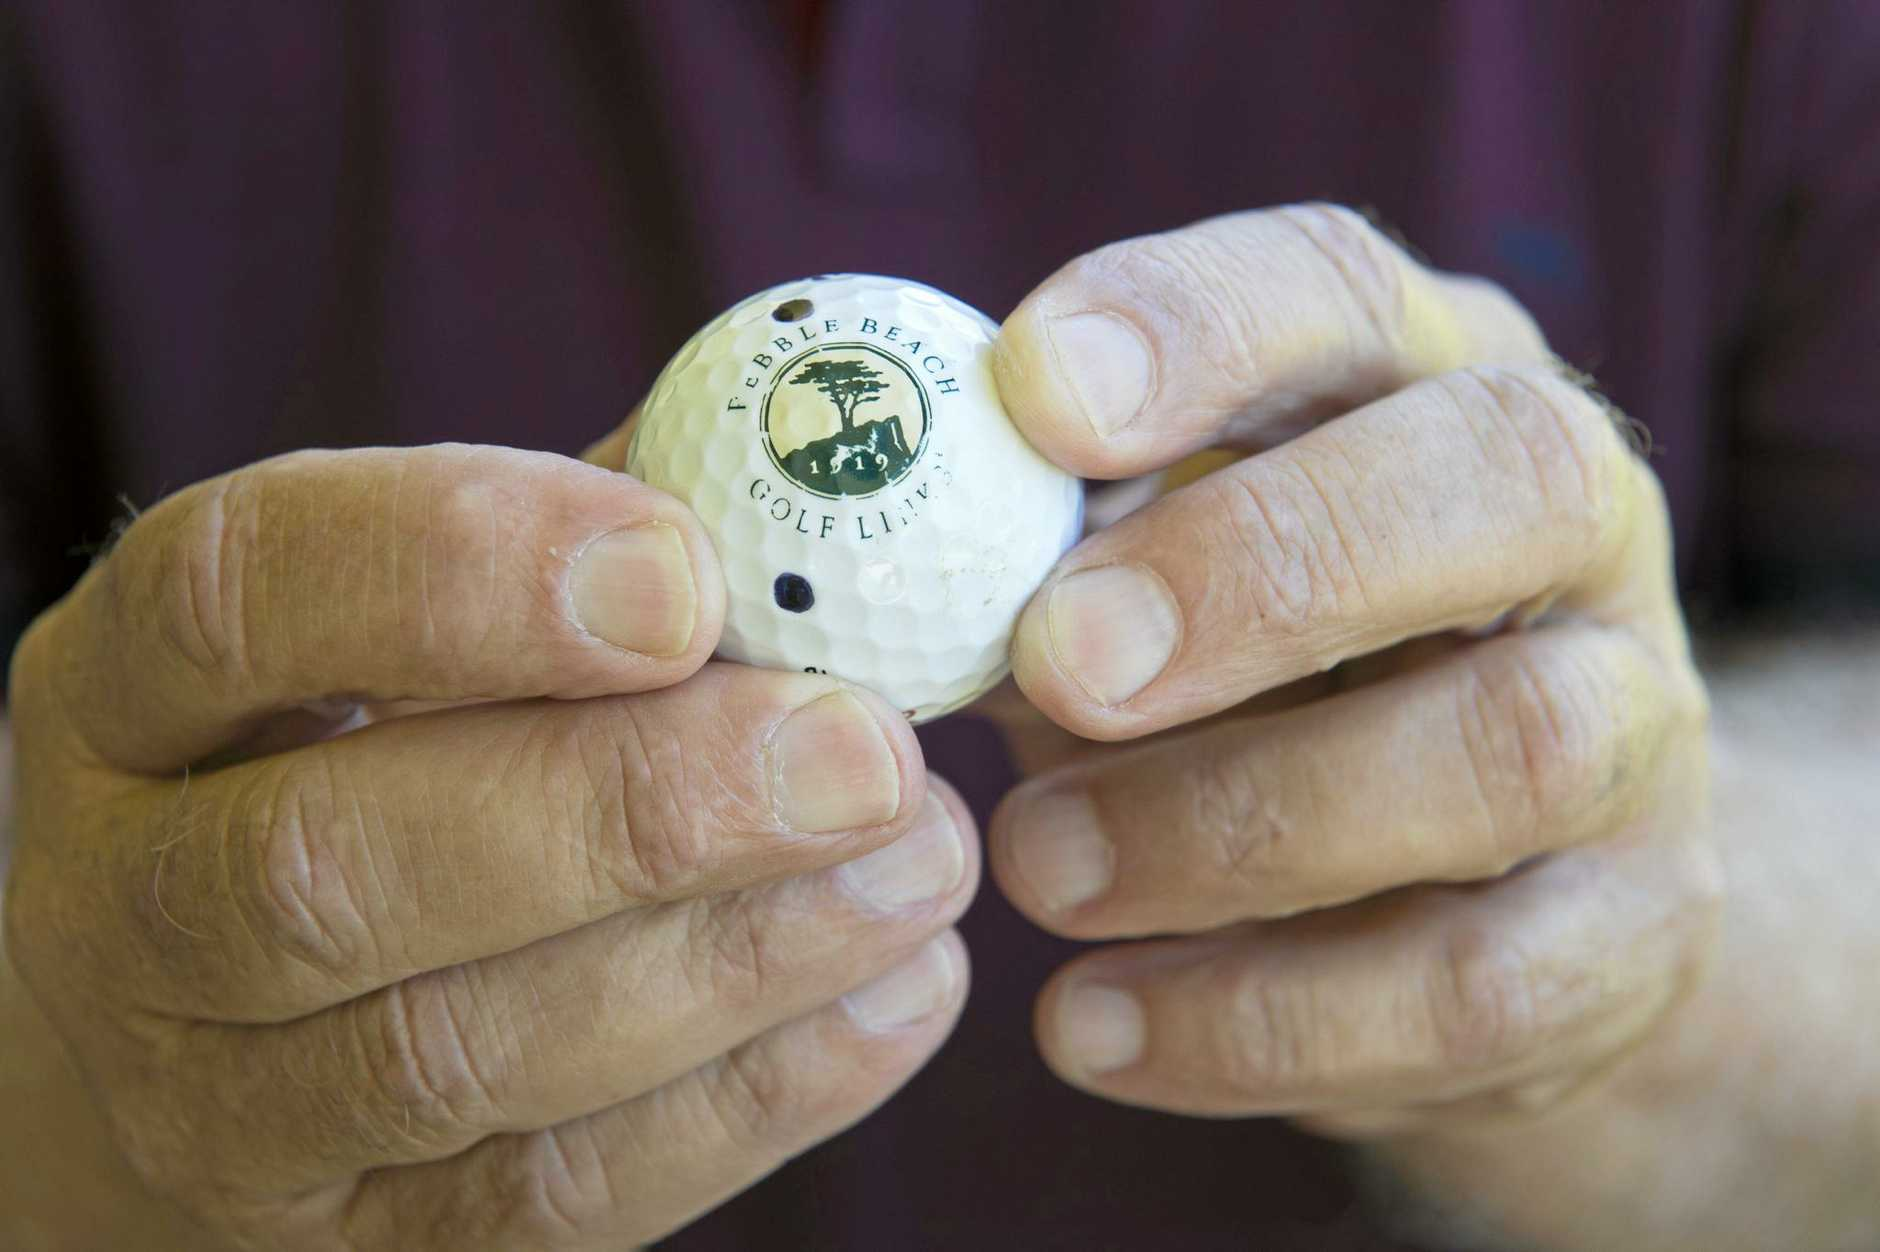 72-year-old Ray Baulch scored his first offical hole-in-one at Toowoomba Golf Club with an American ball given to him by his son, Wednesday, November 23, 2016.